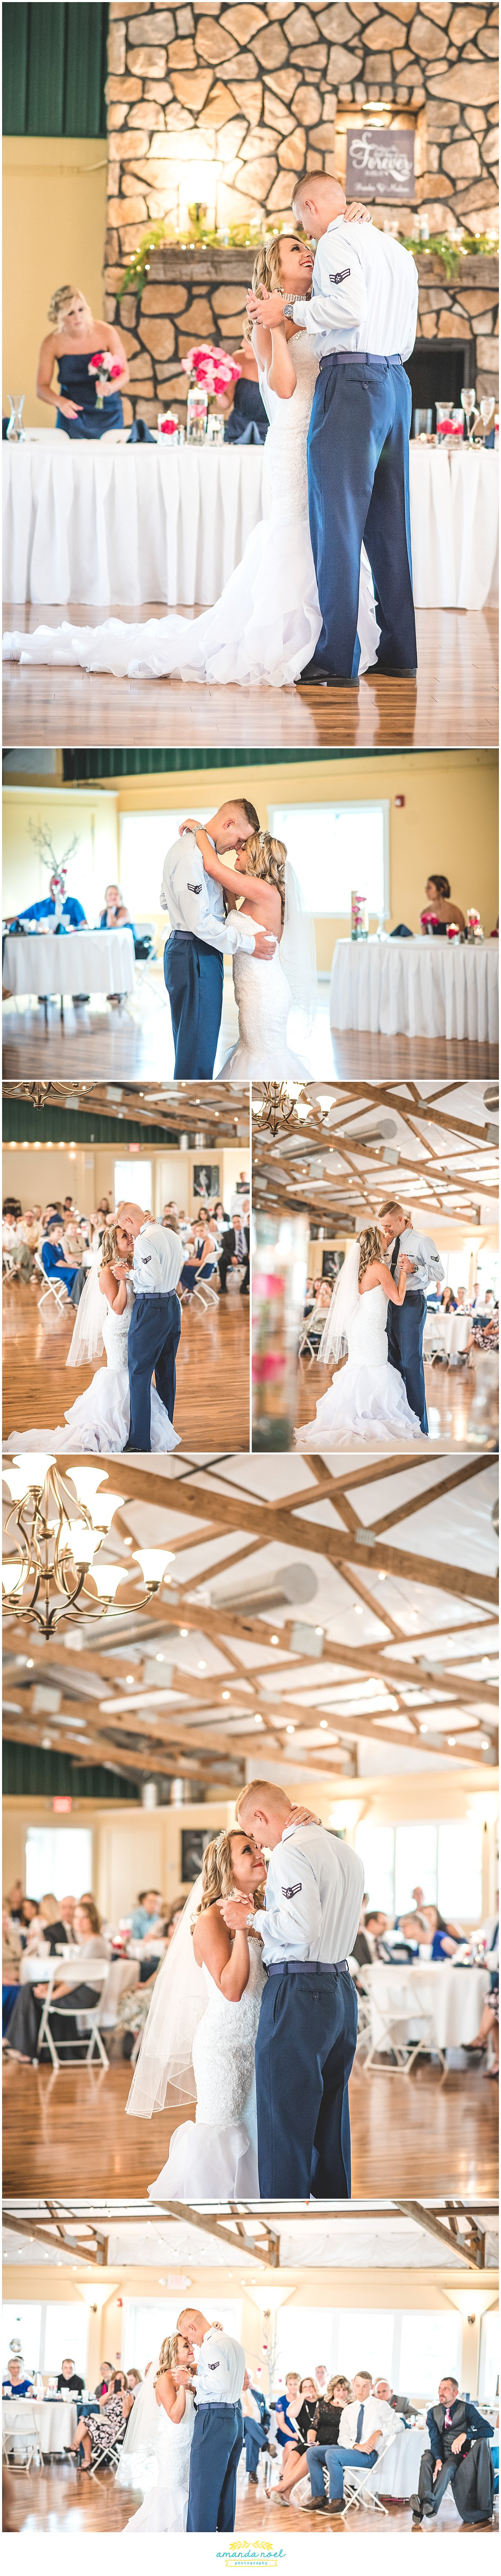 Springfield Ohio wedding first dance